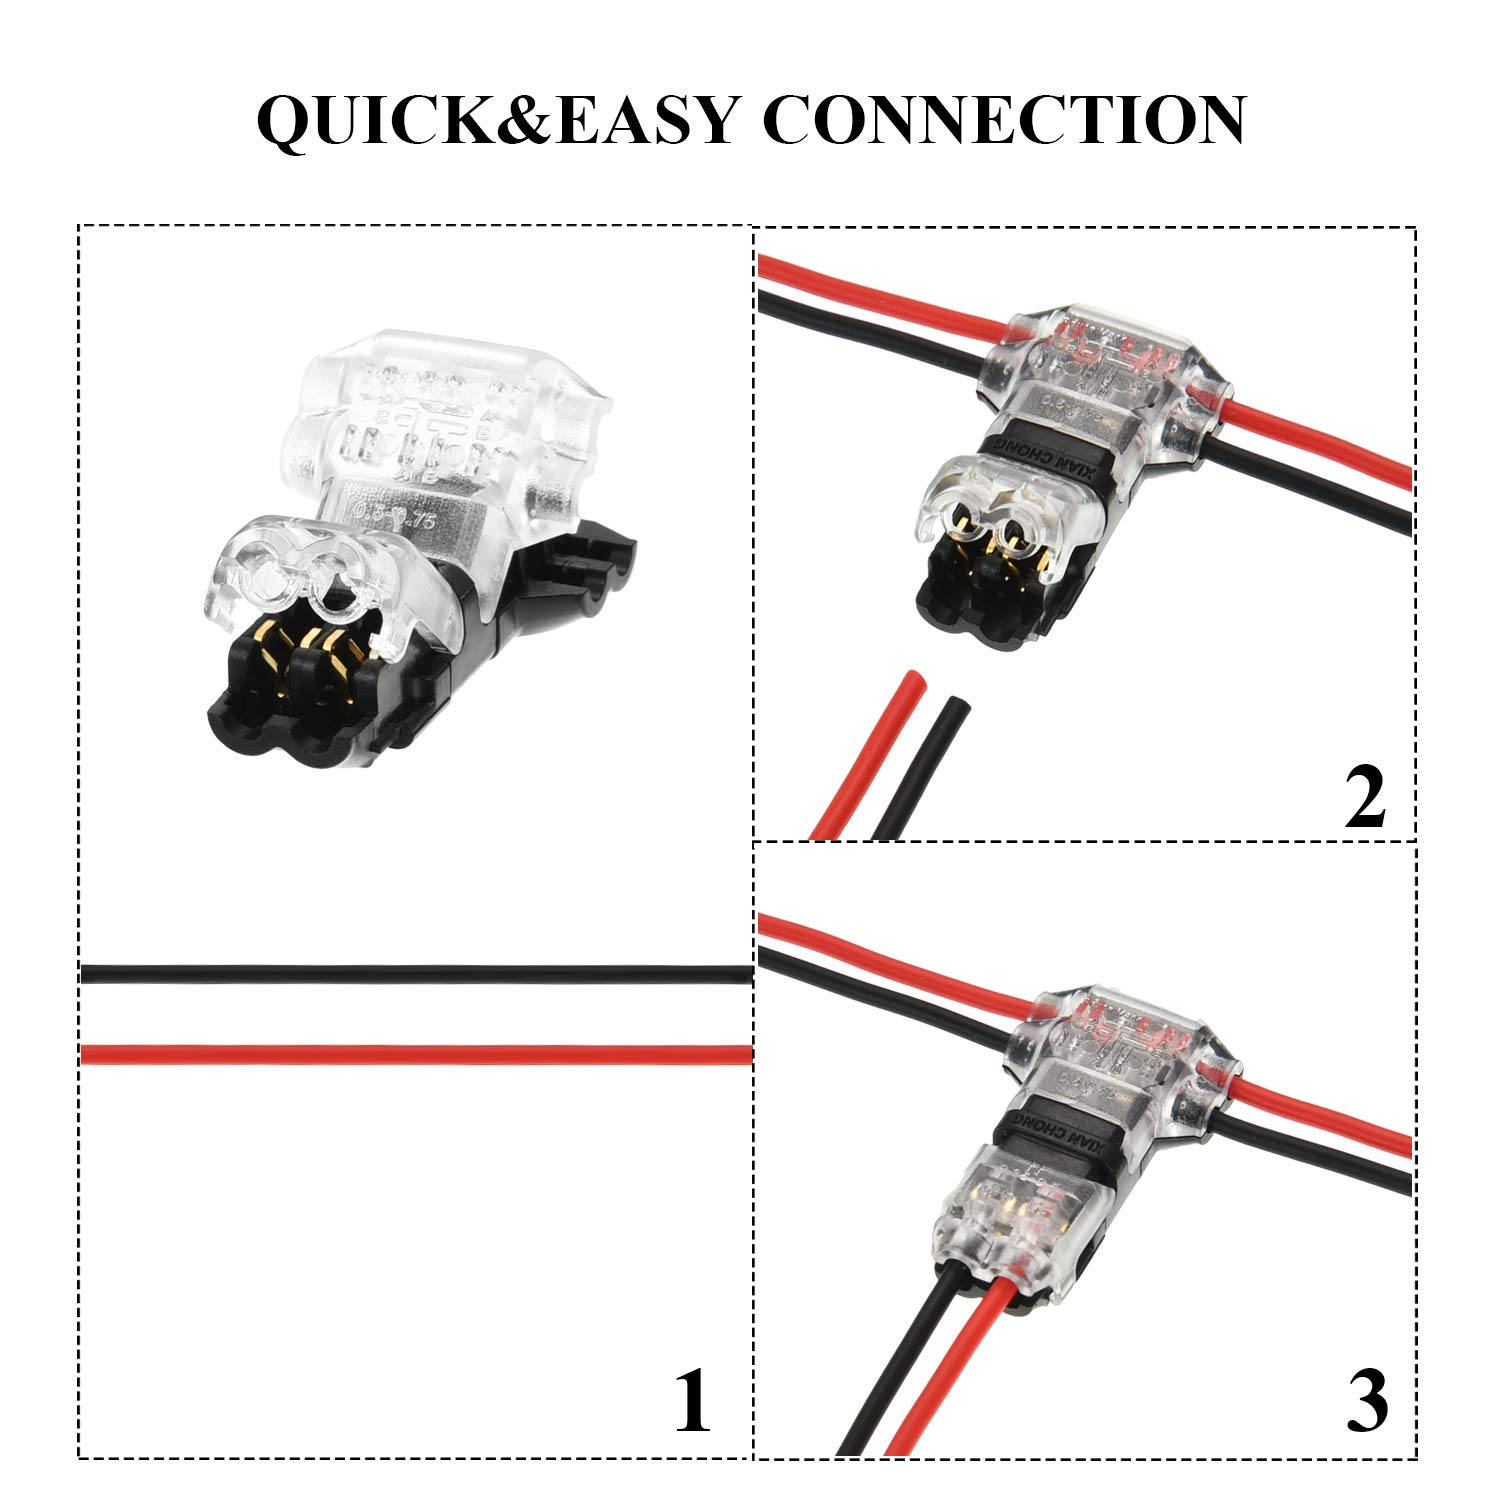 Tatuo 15 Pieces of 2 Pin 2 Way Wire Connectors Low Voltage Universal Compact Wire Connectors without Wire-Stripping for 18-22 AWG Cable, T Tape by Tatuo (Image #5)